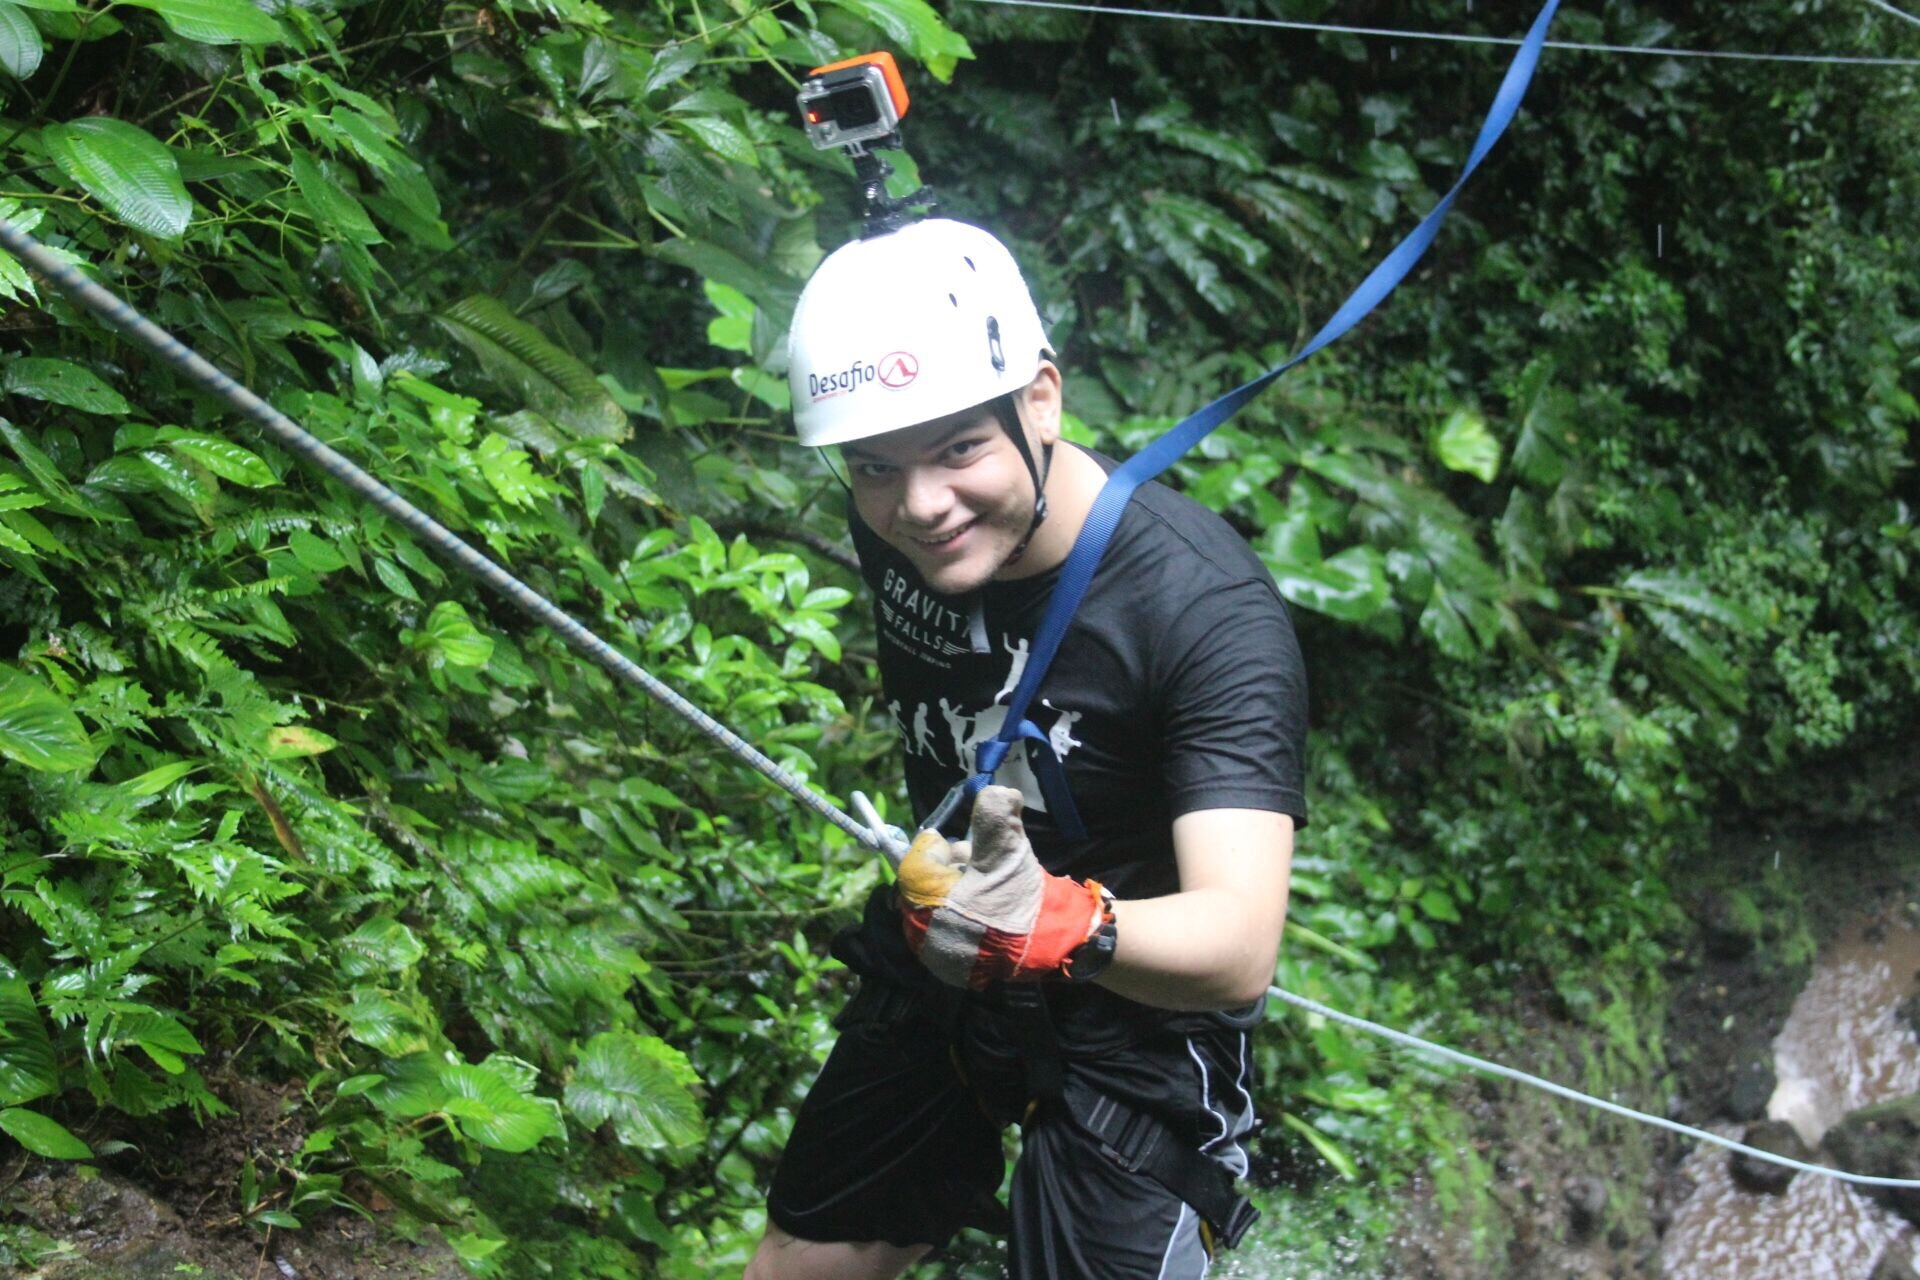 Canyoning in Arenal, Costa Rica in the Lost Canyon is a true rush with Desafio.